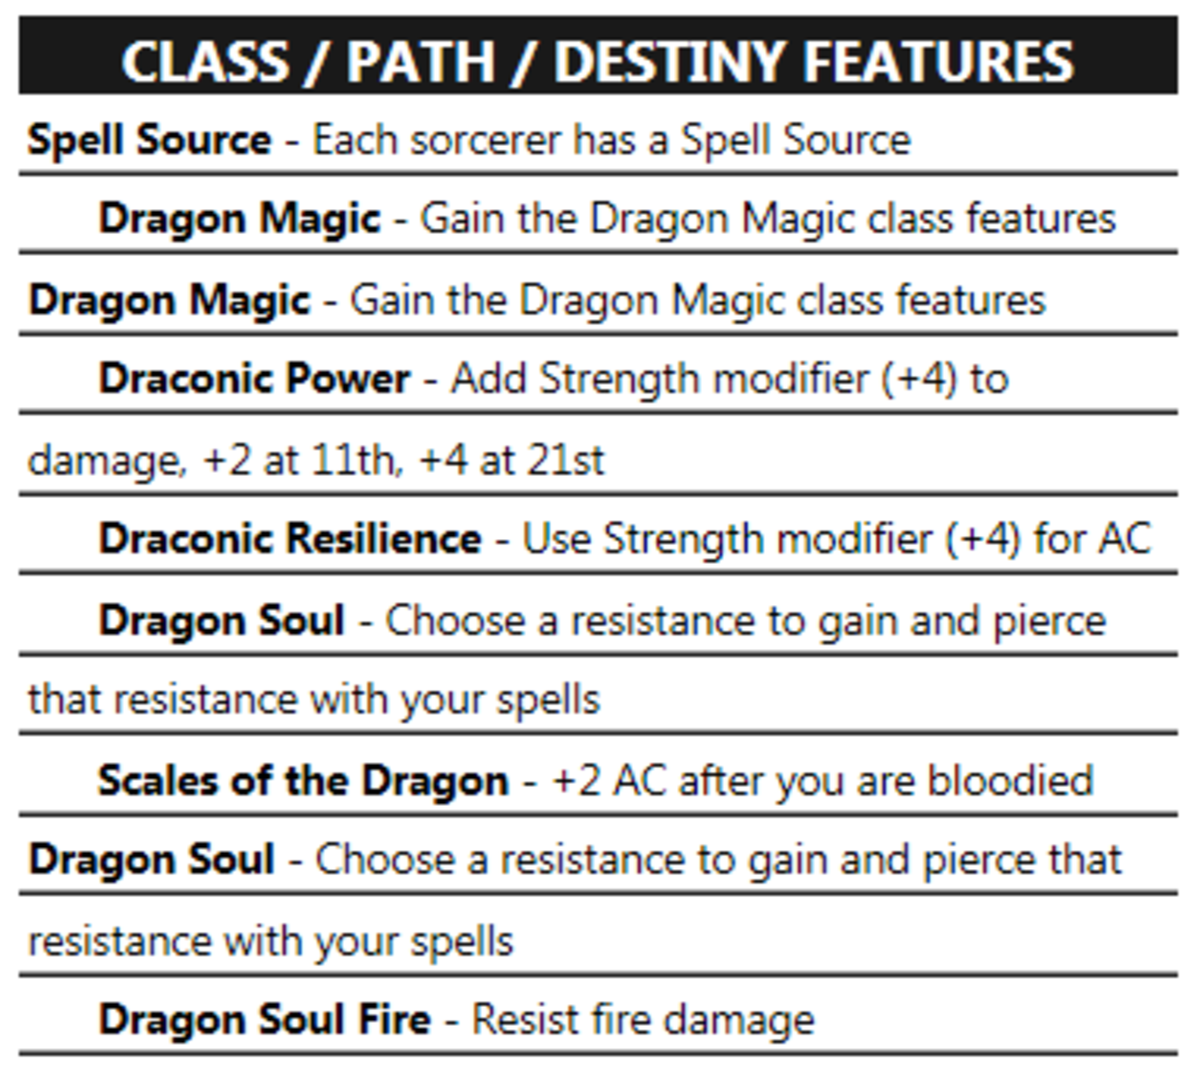 Particular classes have their own features and, in this sorcerer's case, special resistances.